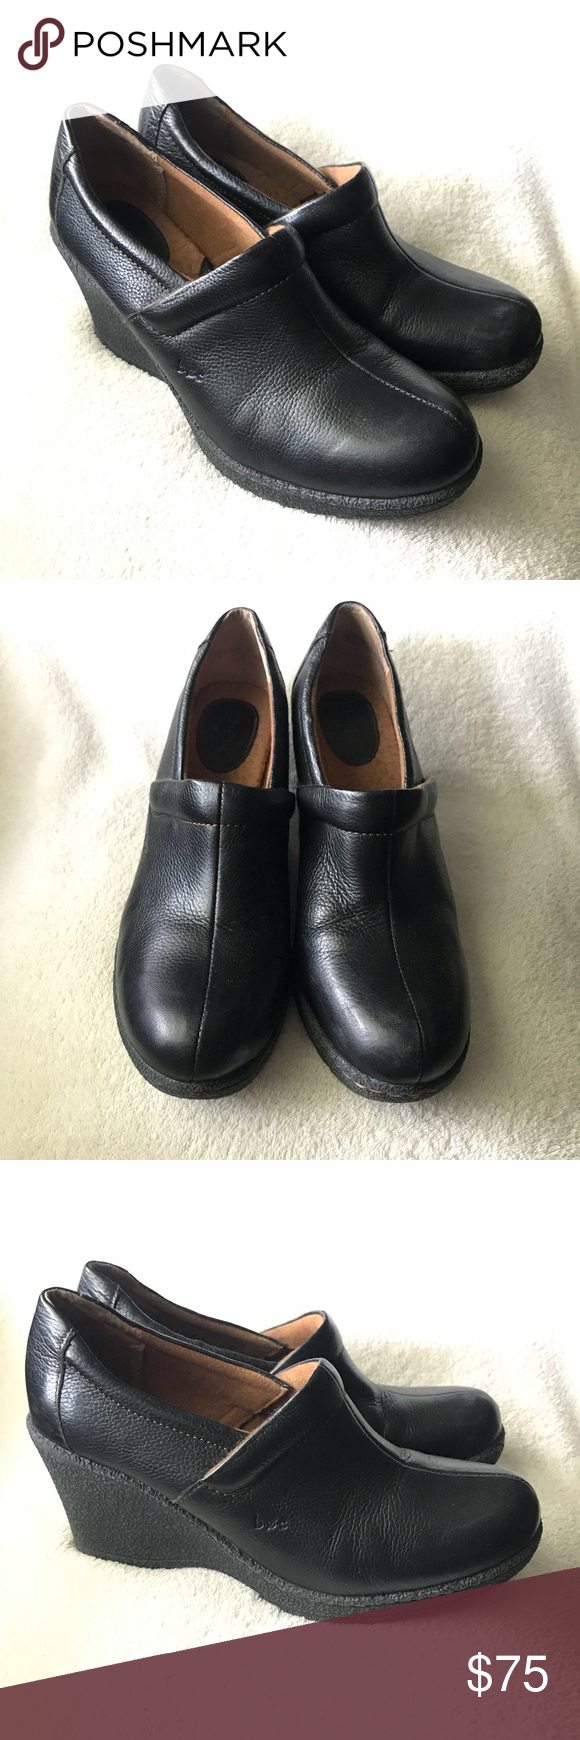 """97191f4ed94 BOC By BORN Black Wedges Shoes FEATURES Very comfortable Wedges by BORN •  Sz  9 • Color  Black • Heel  3.25"""" • Shoes have a Platform of Approx .75""""  ..."""